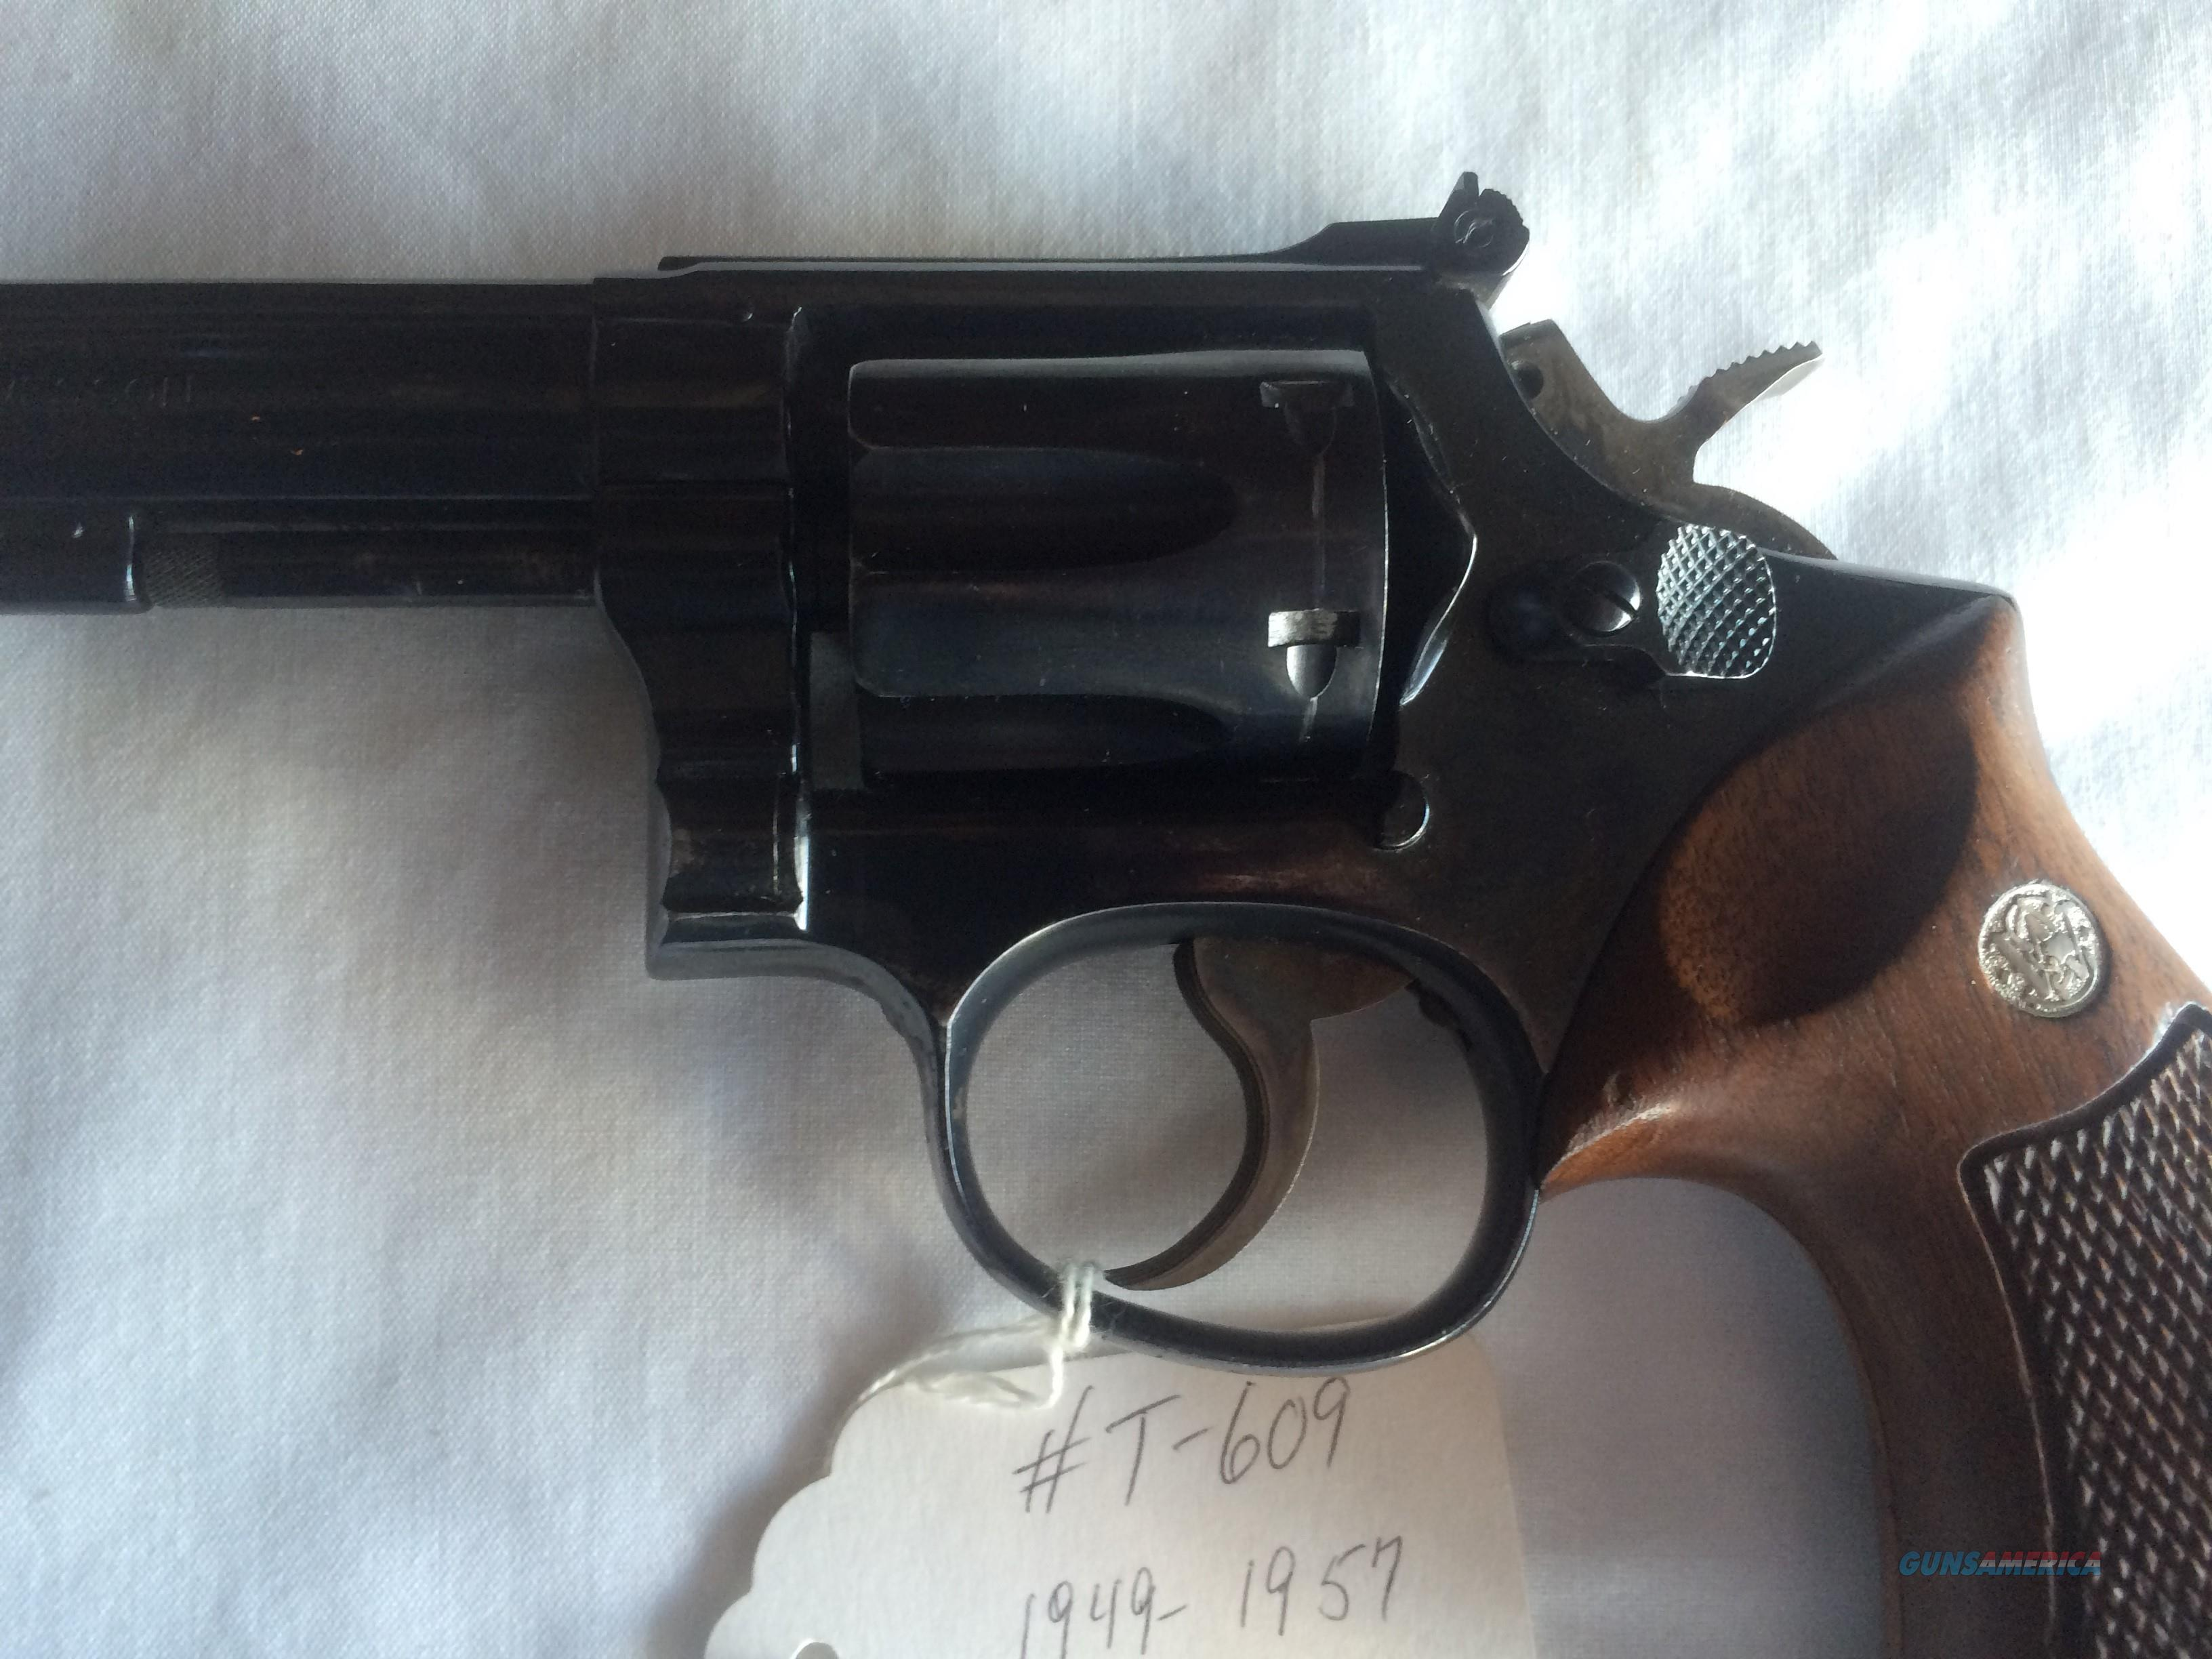 SMITH & WESSON PRE-MODEL 15 COMBAT MASTERPIECE .38 SPECIAL REVOLVER  Guns > Pistols > Smith & Wesson Revolvers > Full Frame Revolver